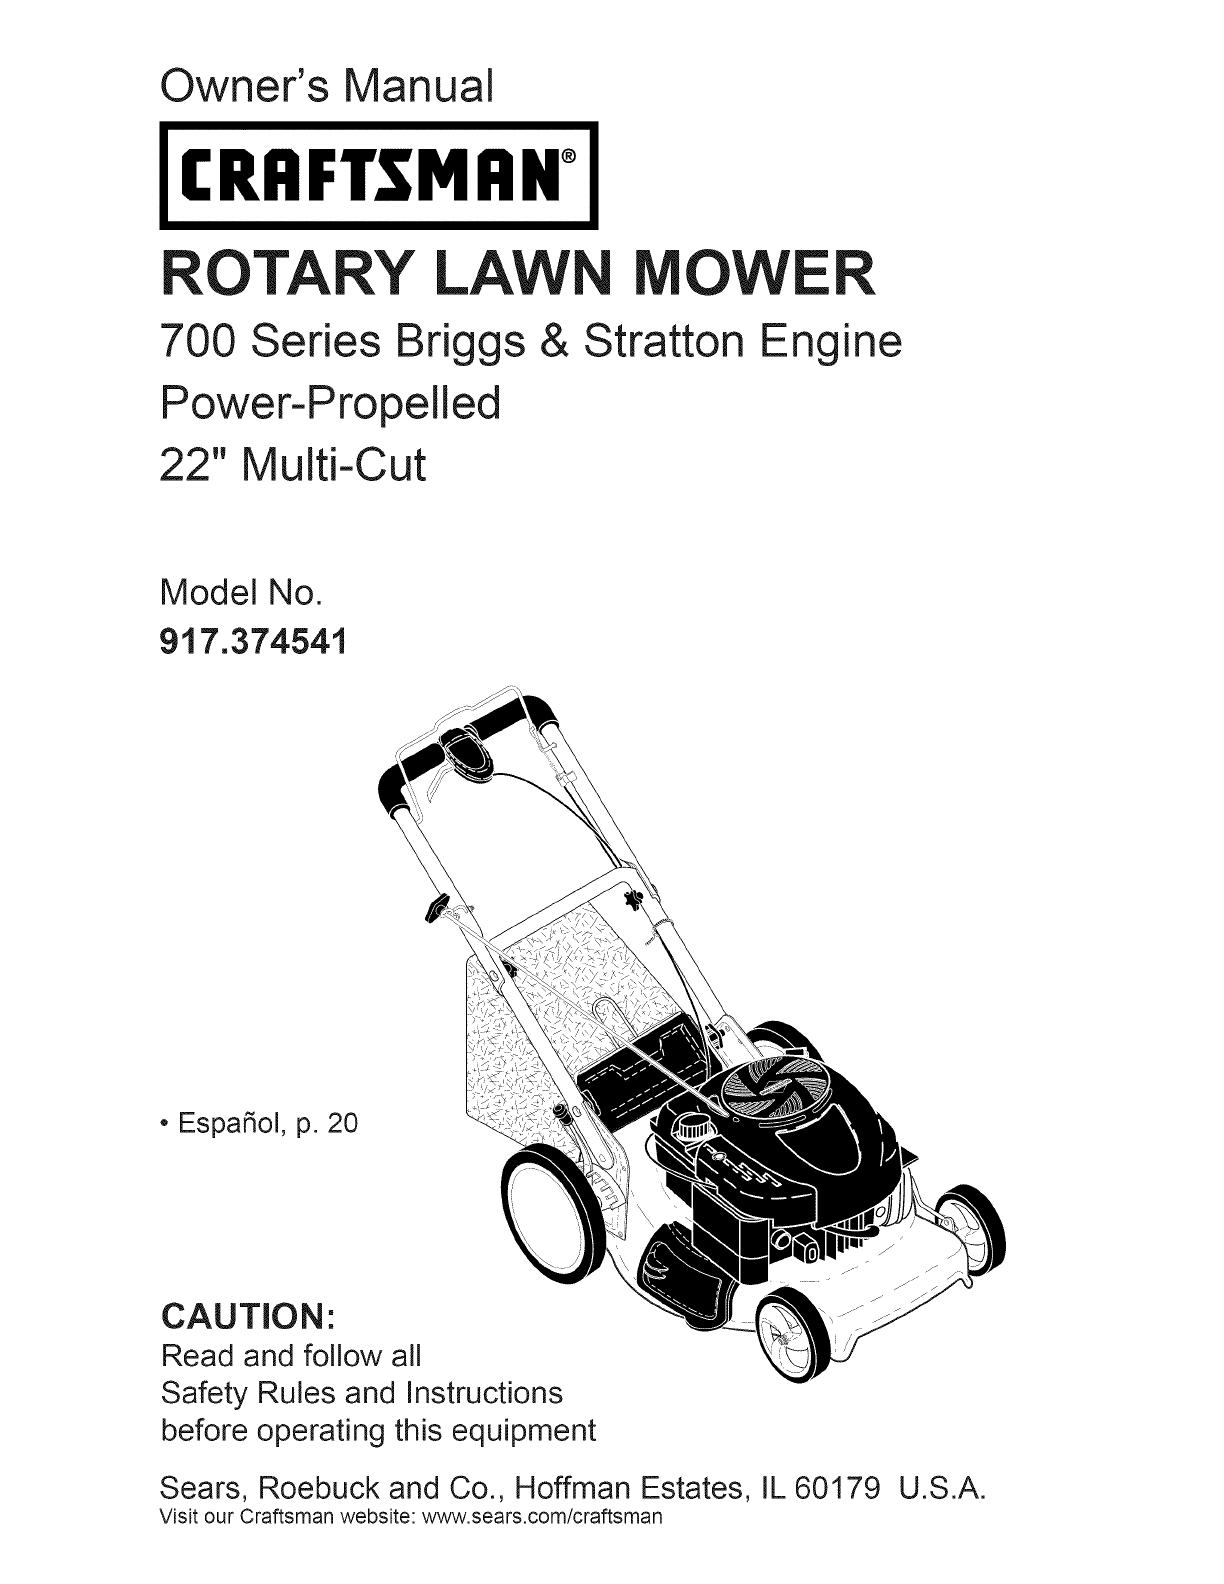 Craftsman Lawn Mower 917 374541 User Guide Manualsonline Com